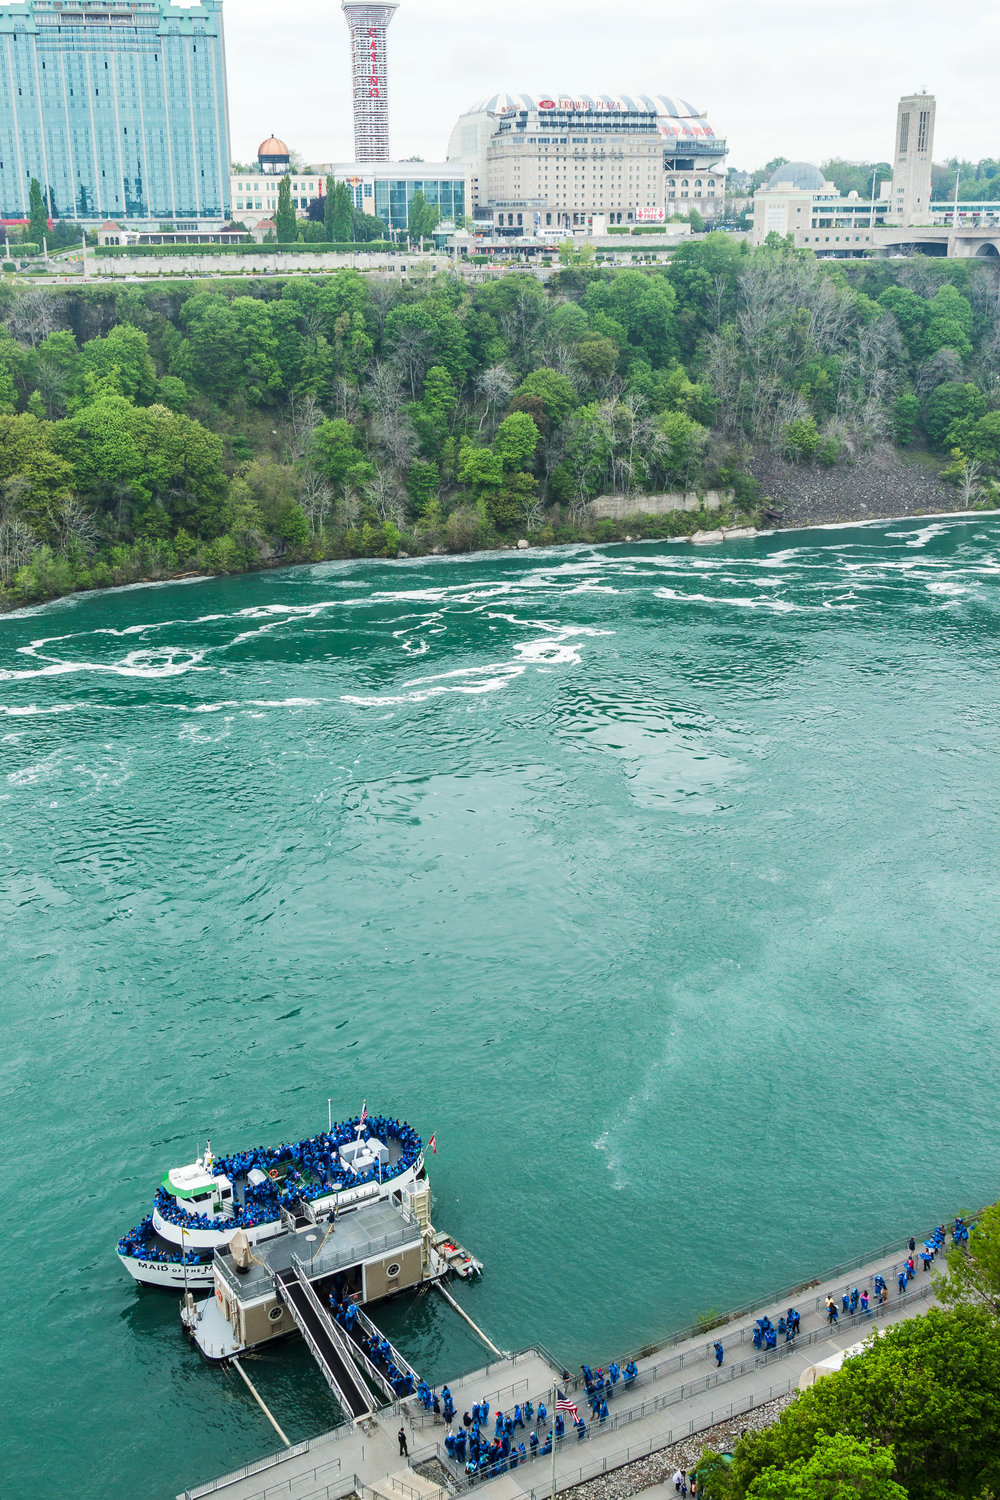 Our vessel for viewing the falls.